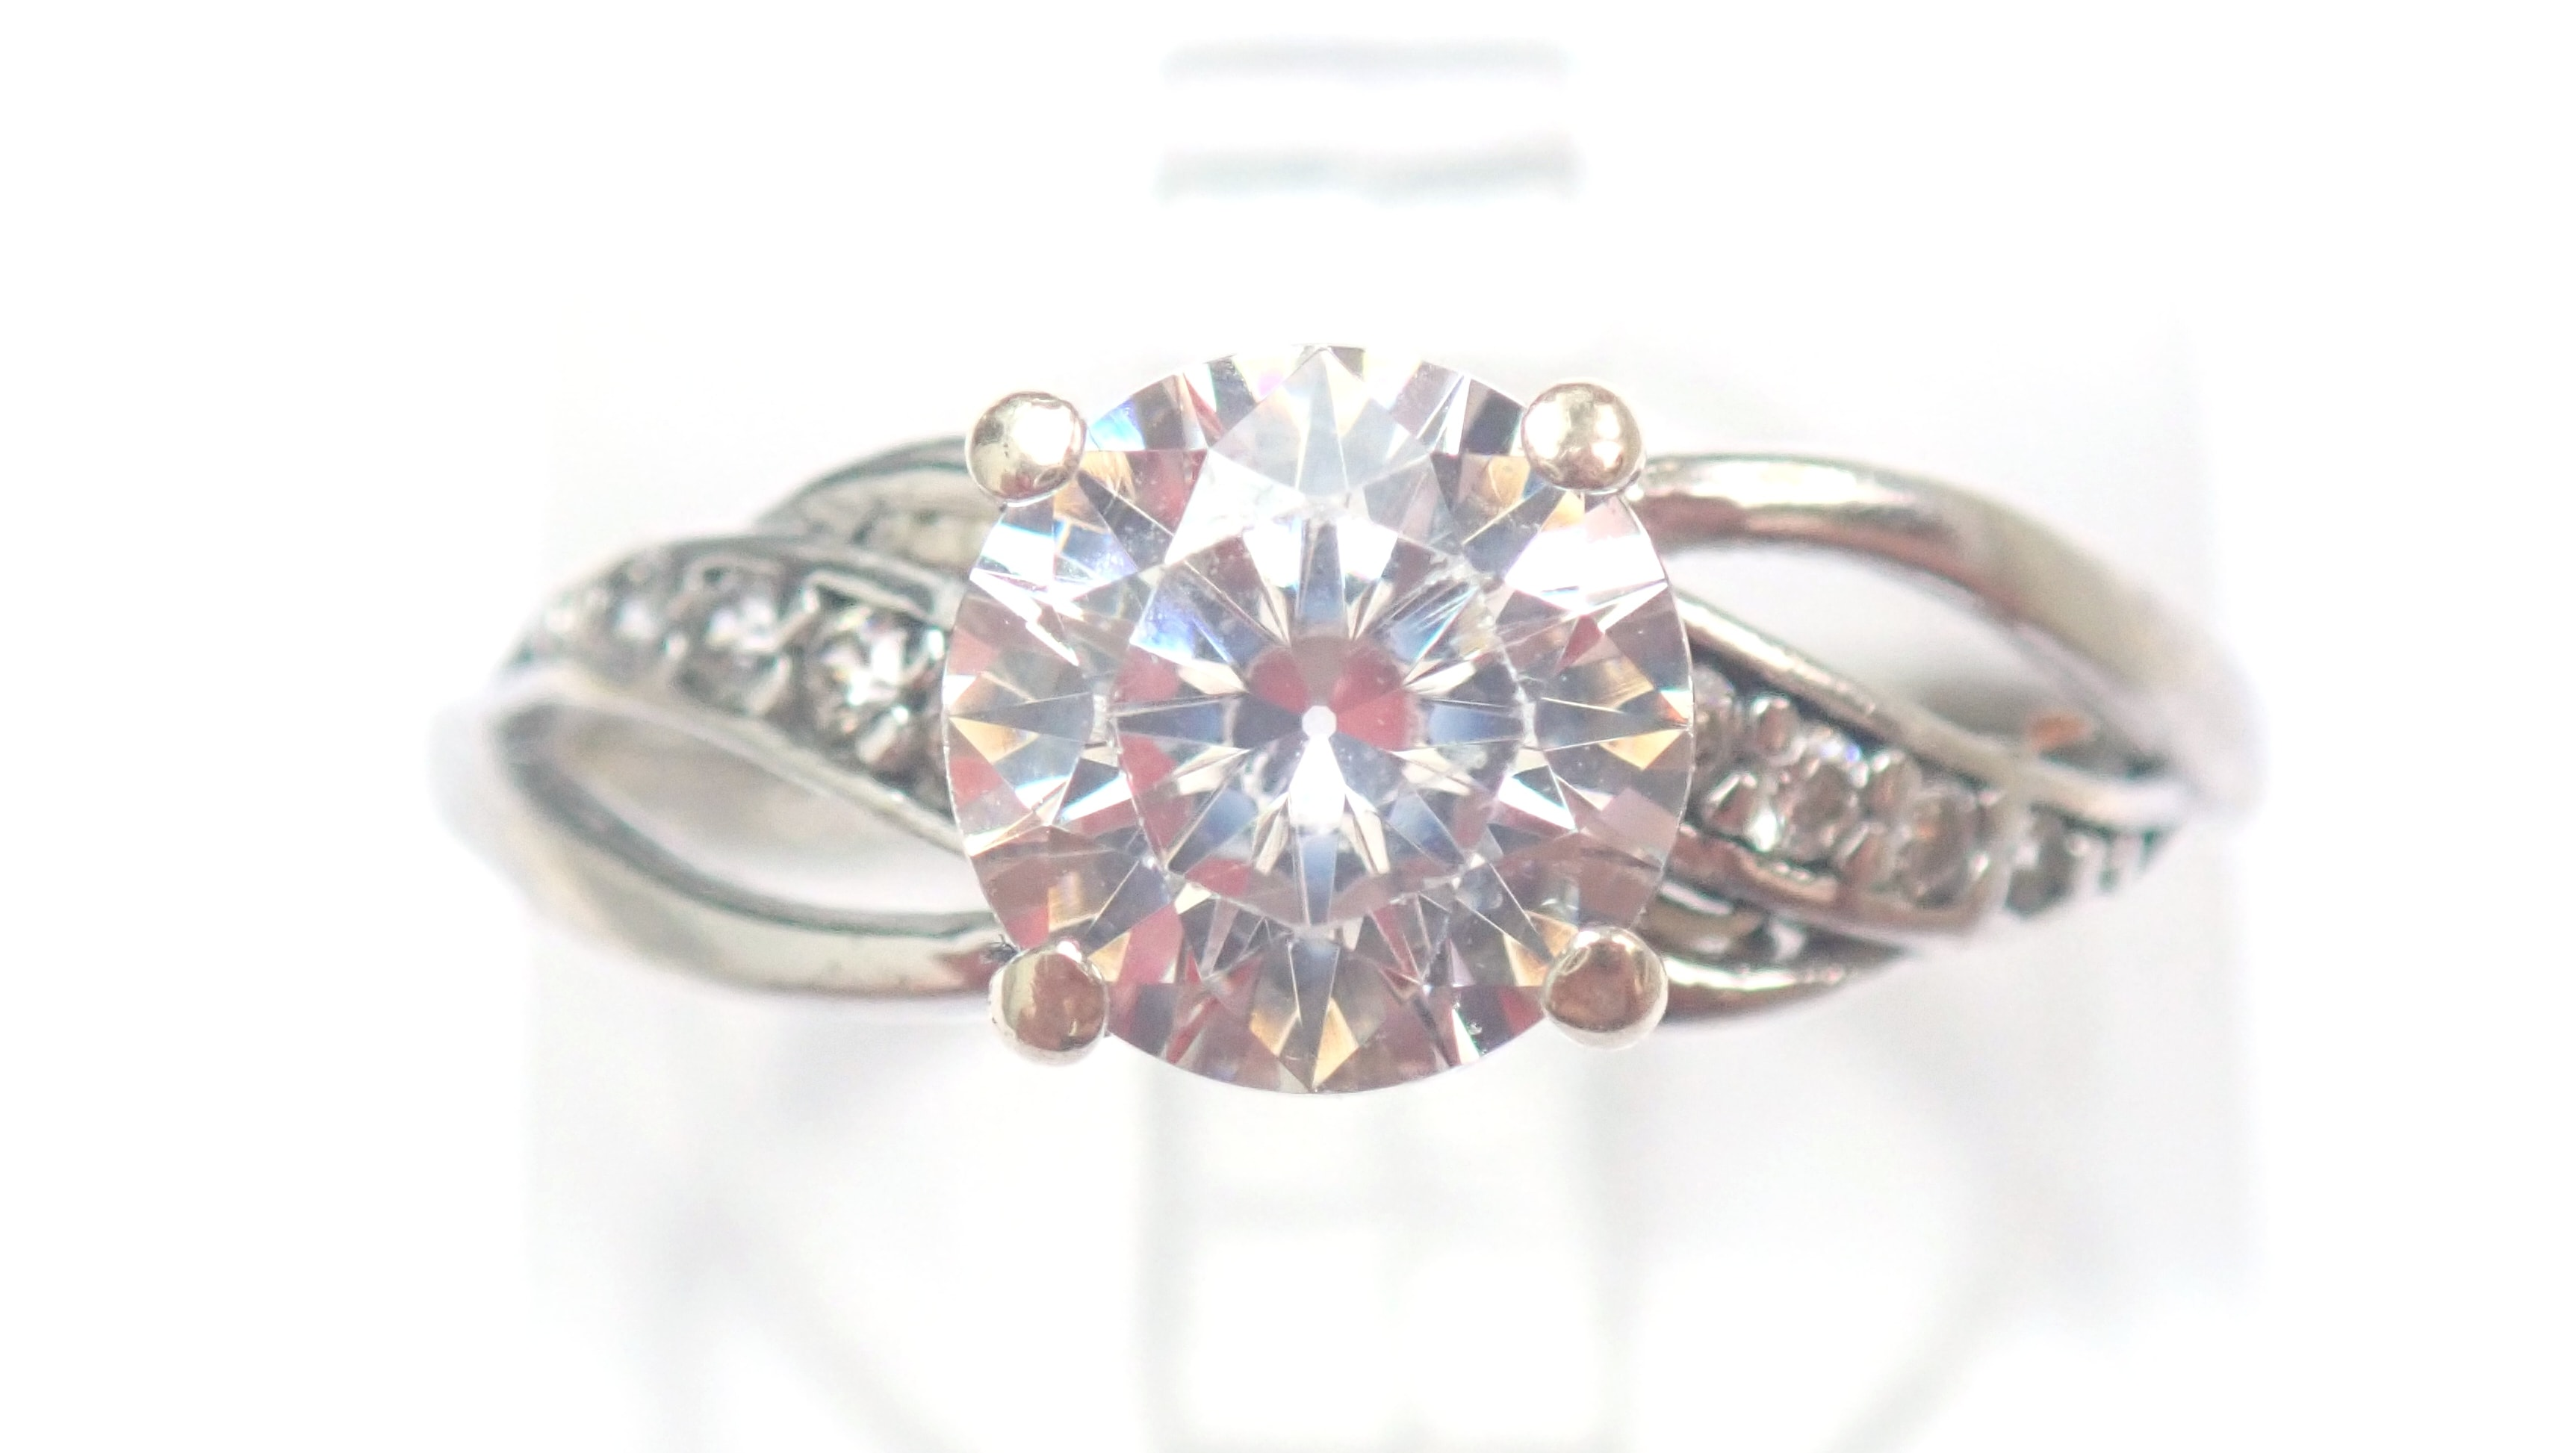 AZZ00349 - 375 Carat Gold 1.0 Carat Cubic Zirconia Solitaire with Accents Size L #25